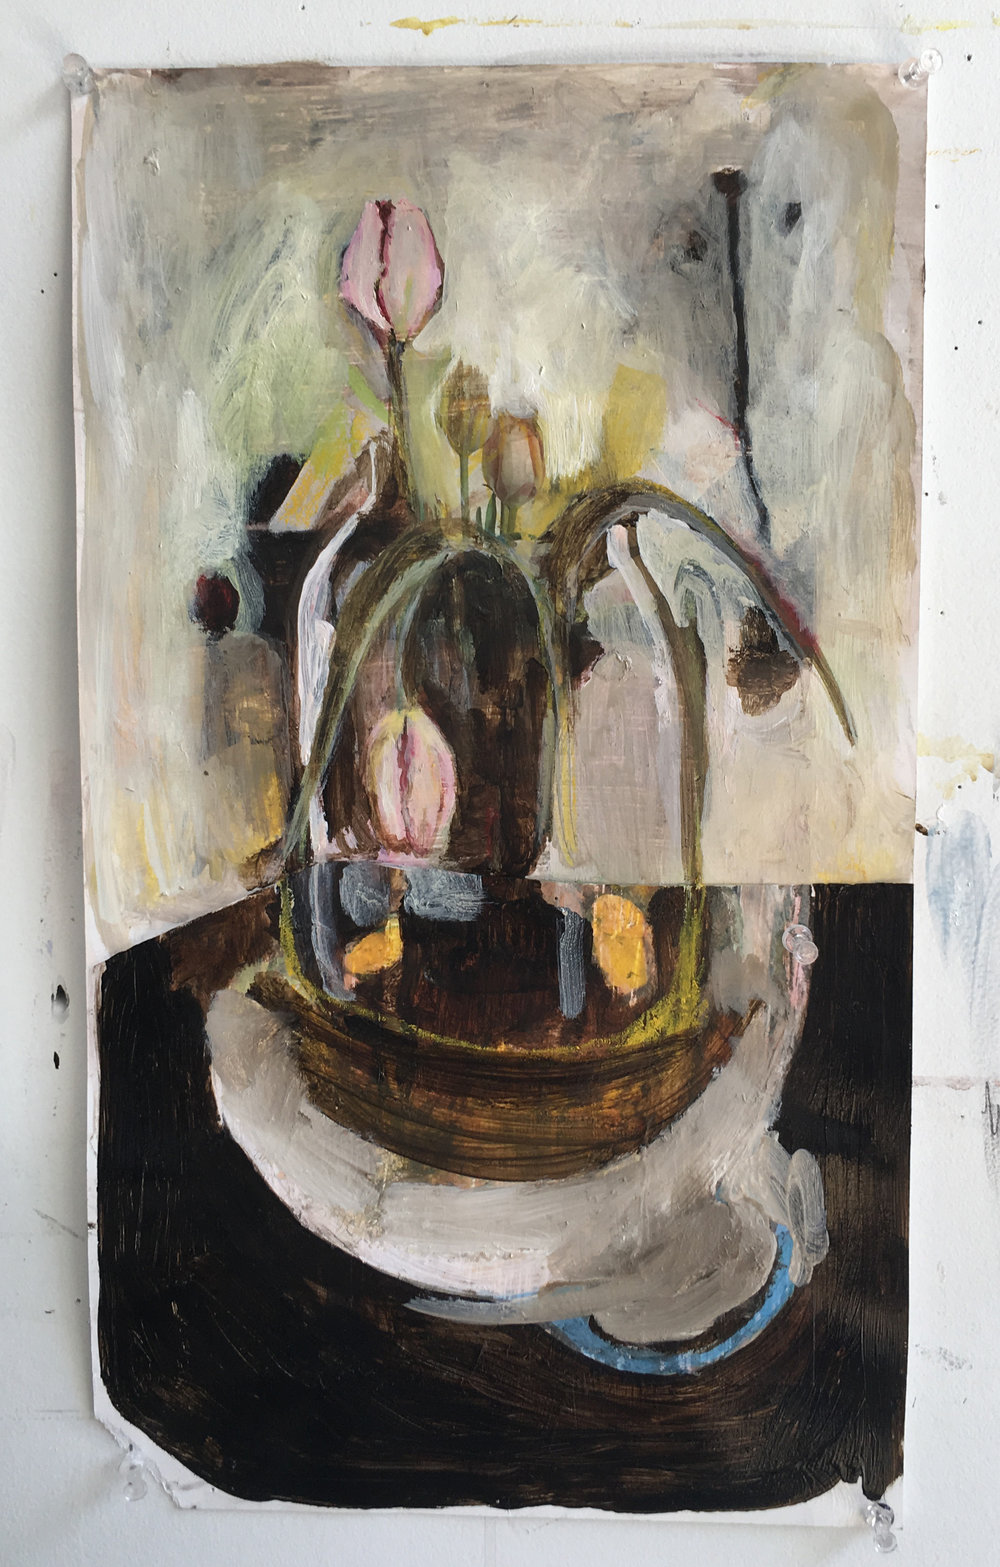 Tulips with Cyan Feelings    Oil, acrylic and inkjet print on paper /  9x12   2018